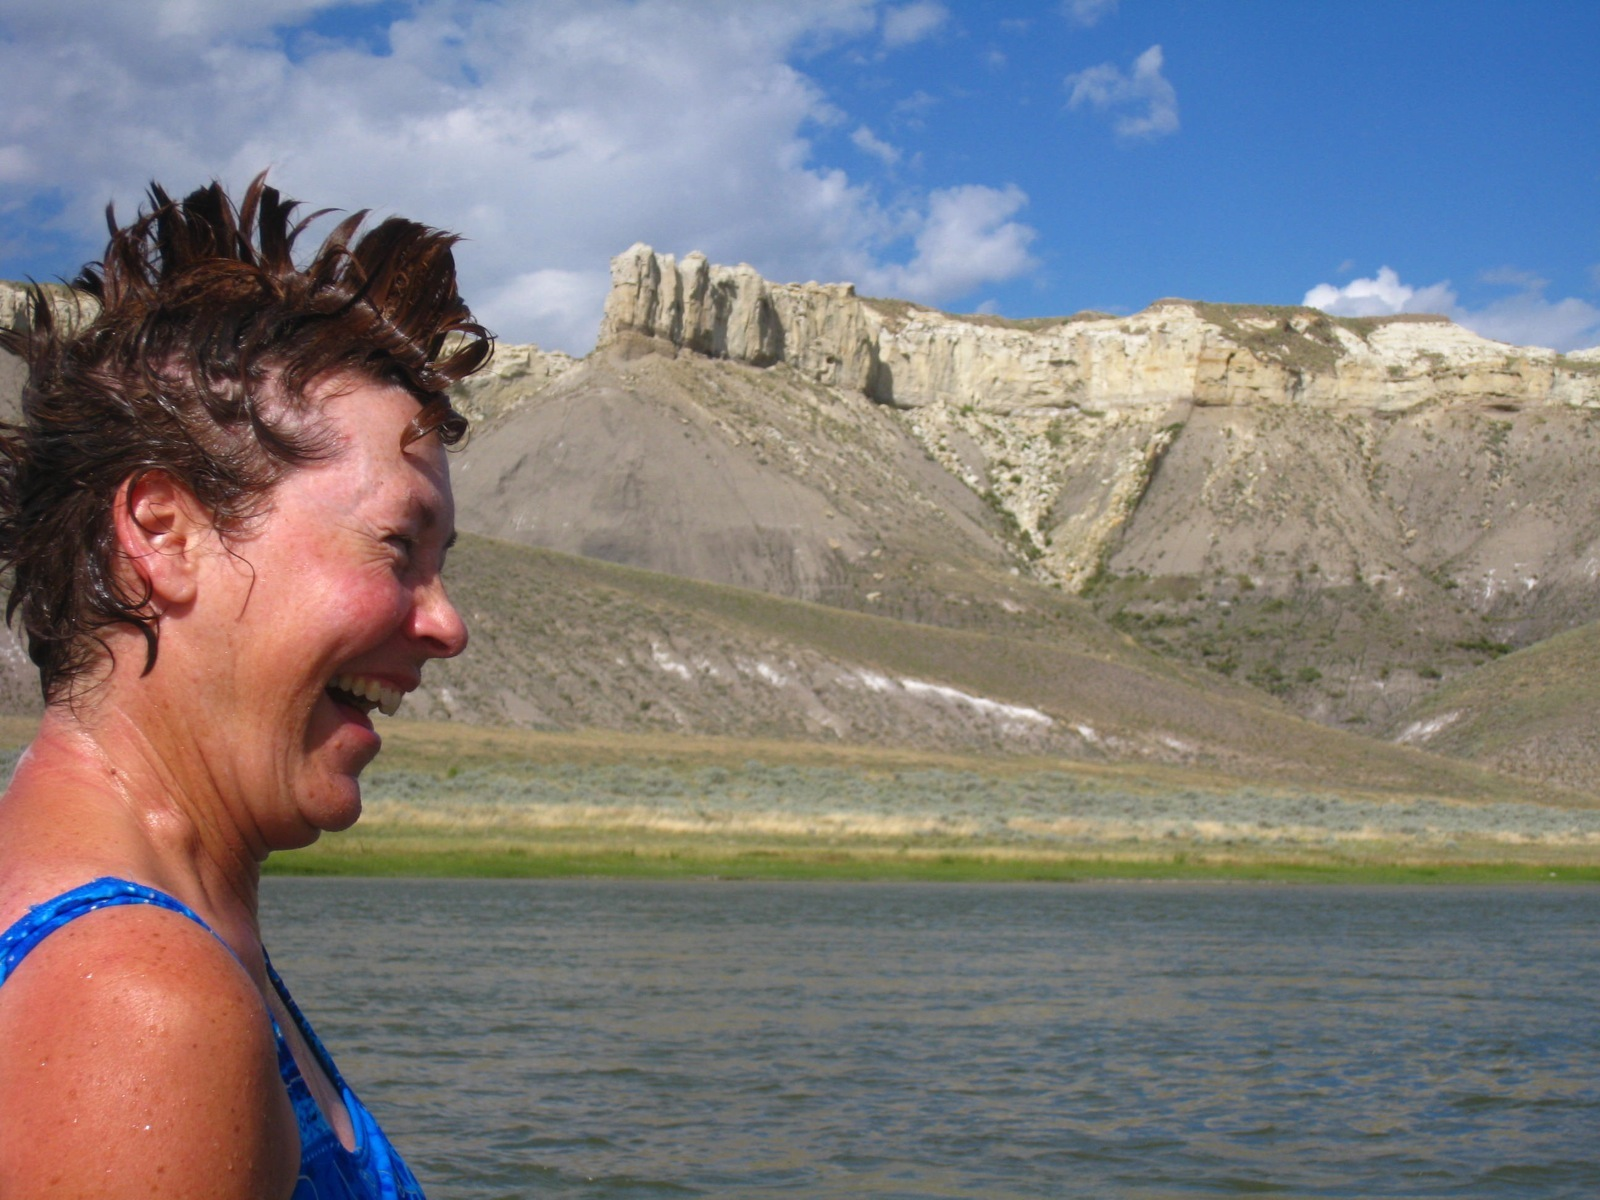 After a swim, a woman sports a mohawk that resembles the Missouri River cliffs in the background.